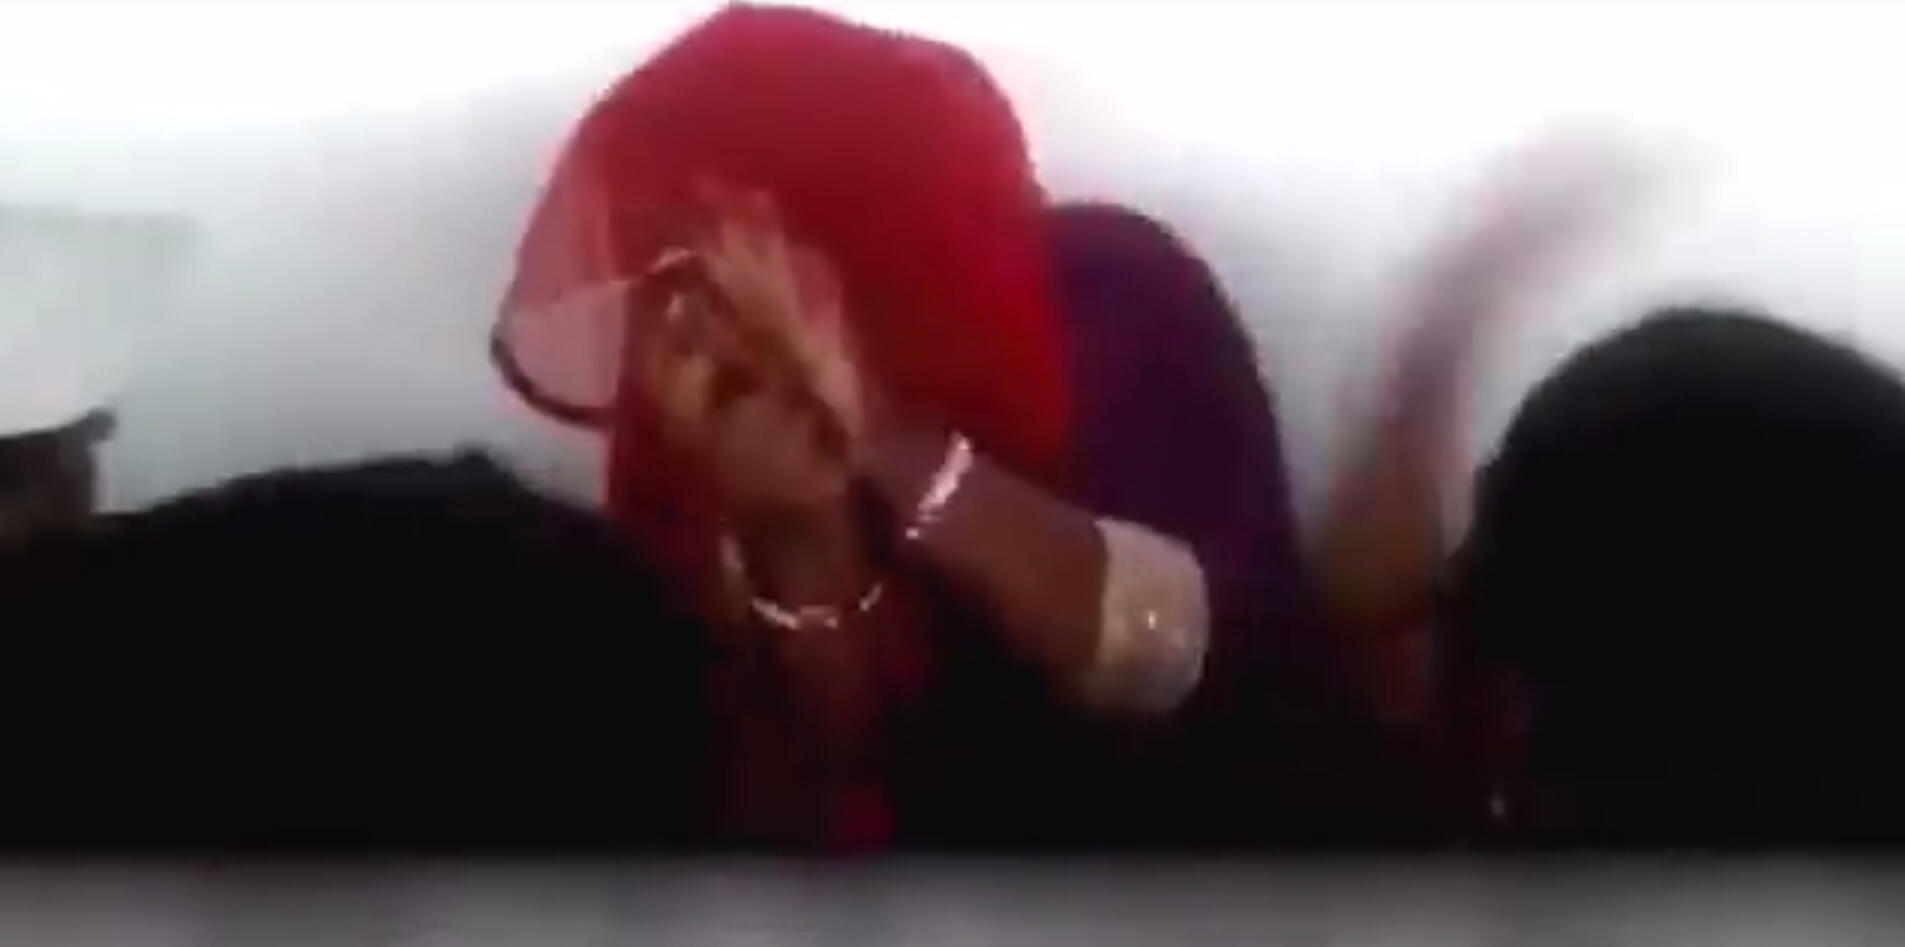 A woman, accused of tansporting beef, tries to protect herself from a mob. Screen grab from the video below.